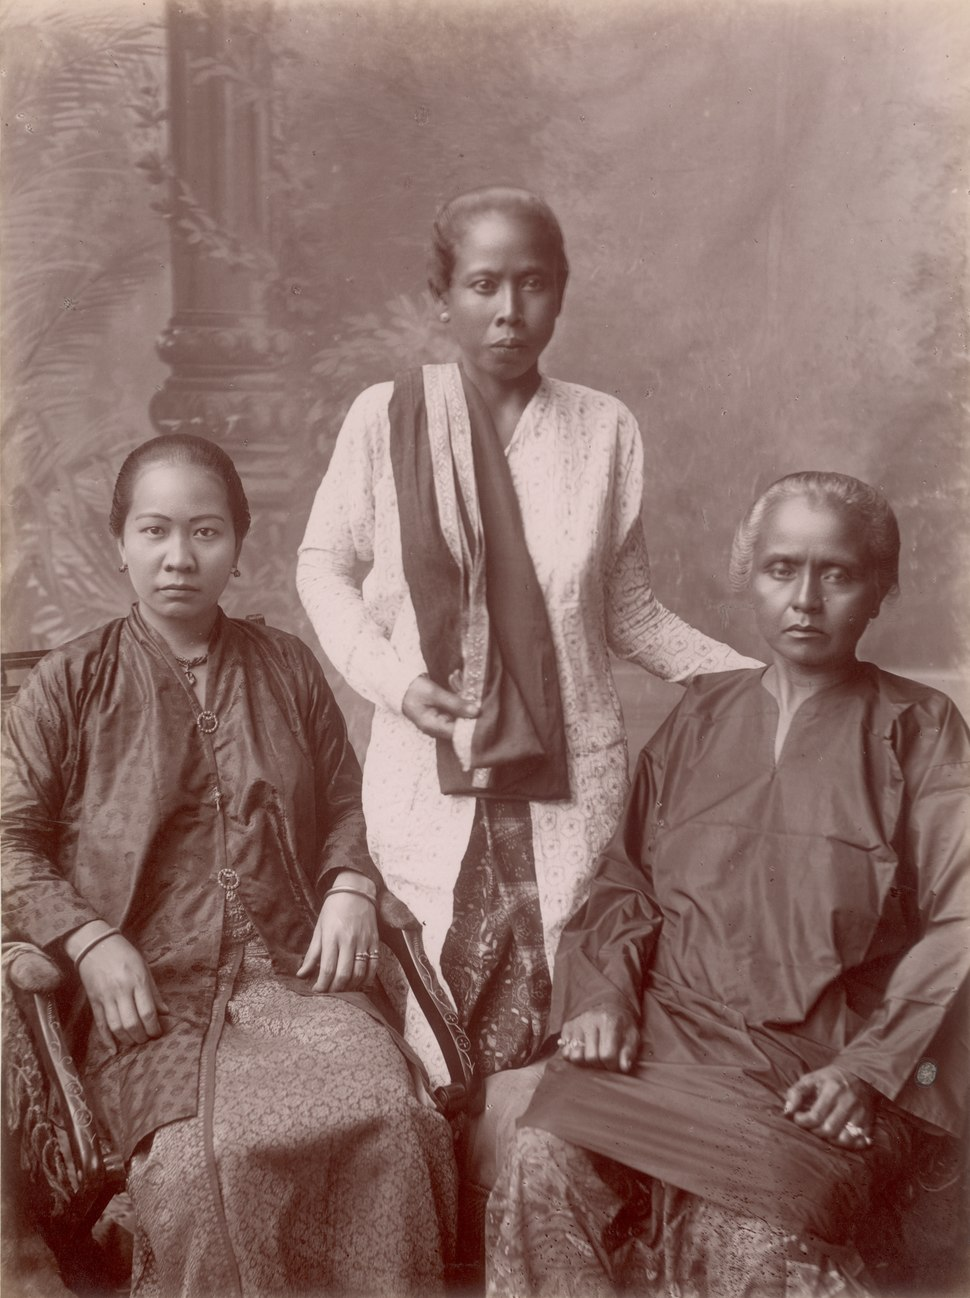 KITLV - 103763 - Chinese and Malaysian women at Singapore - circa 1890